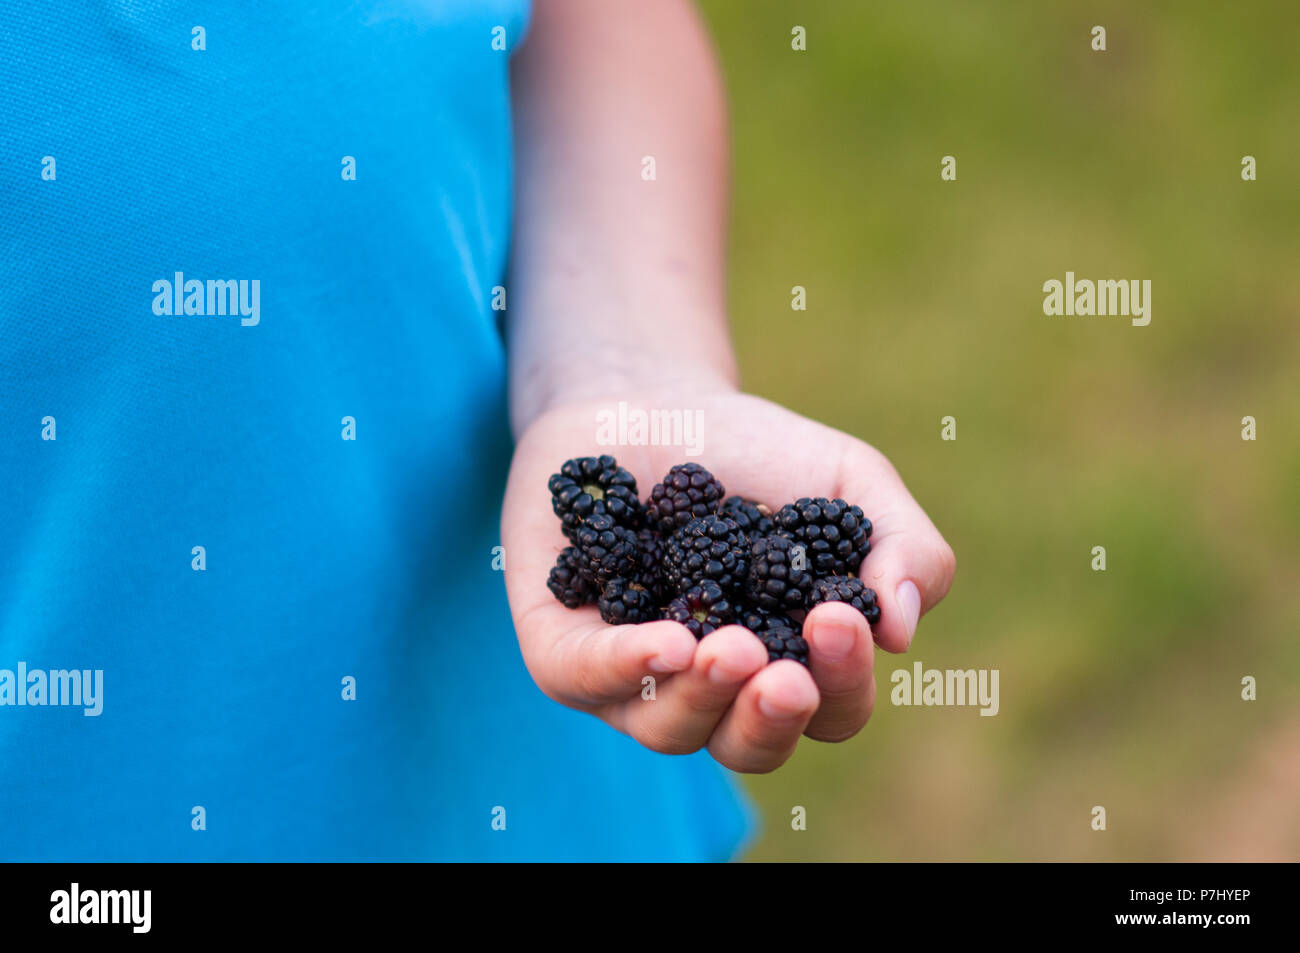 Handful with ripe blackberries - close up of a child's hand - Stock Image